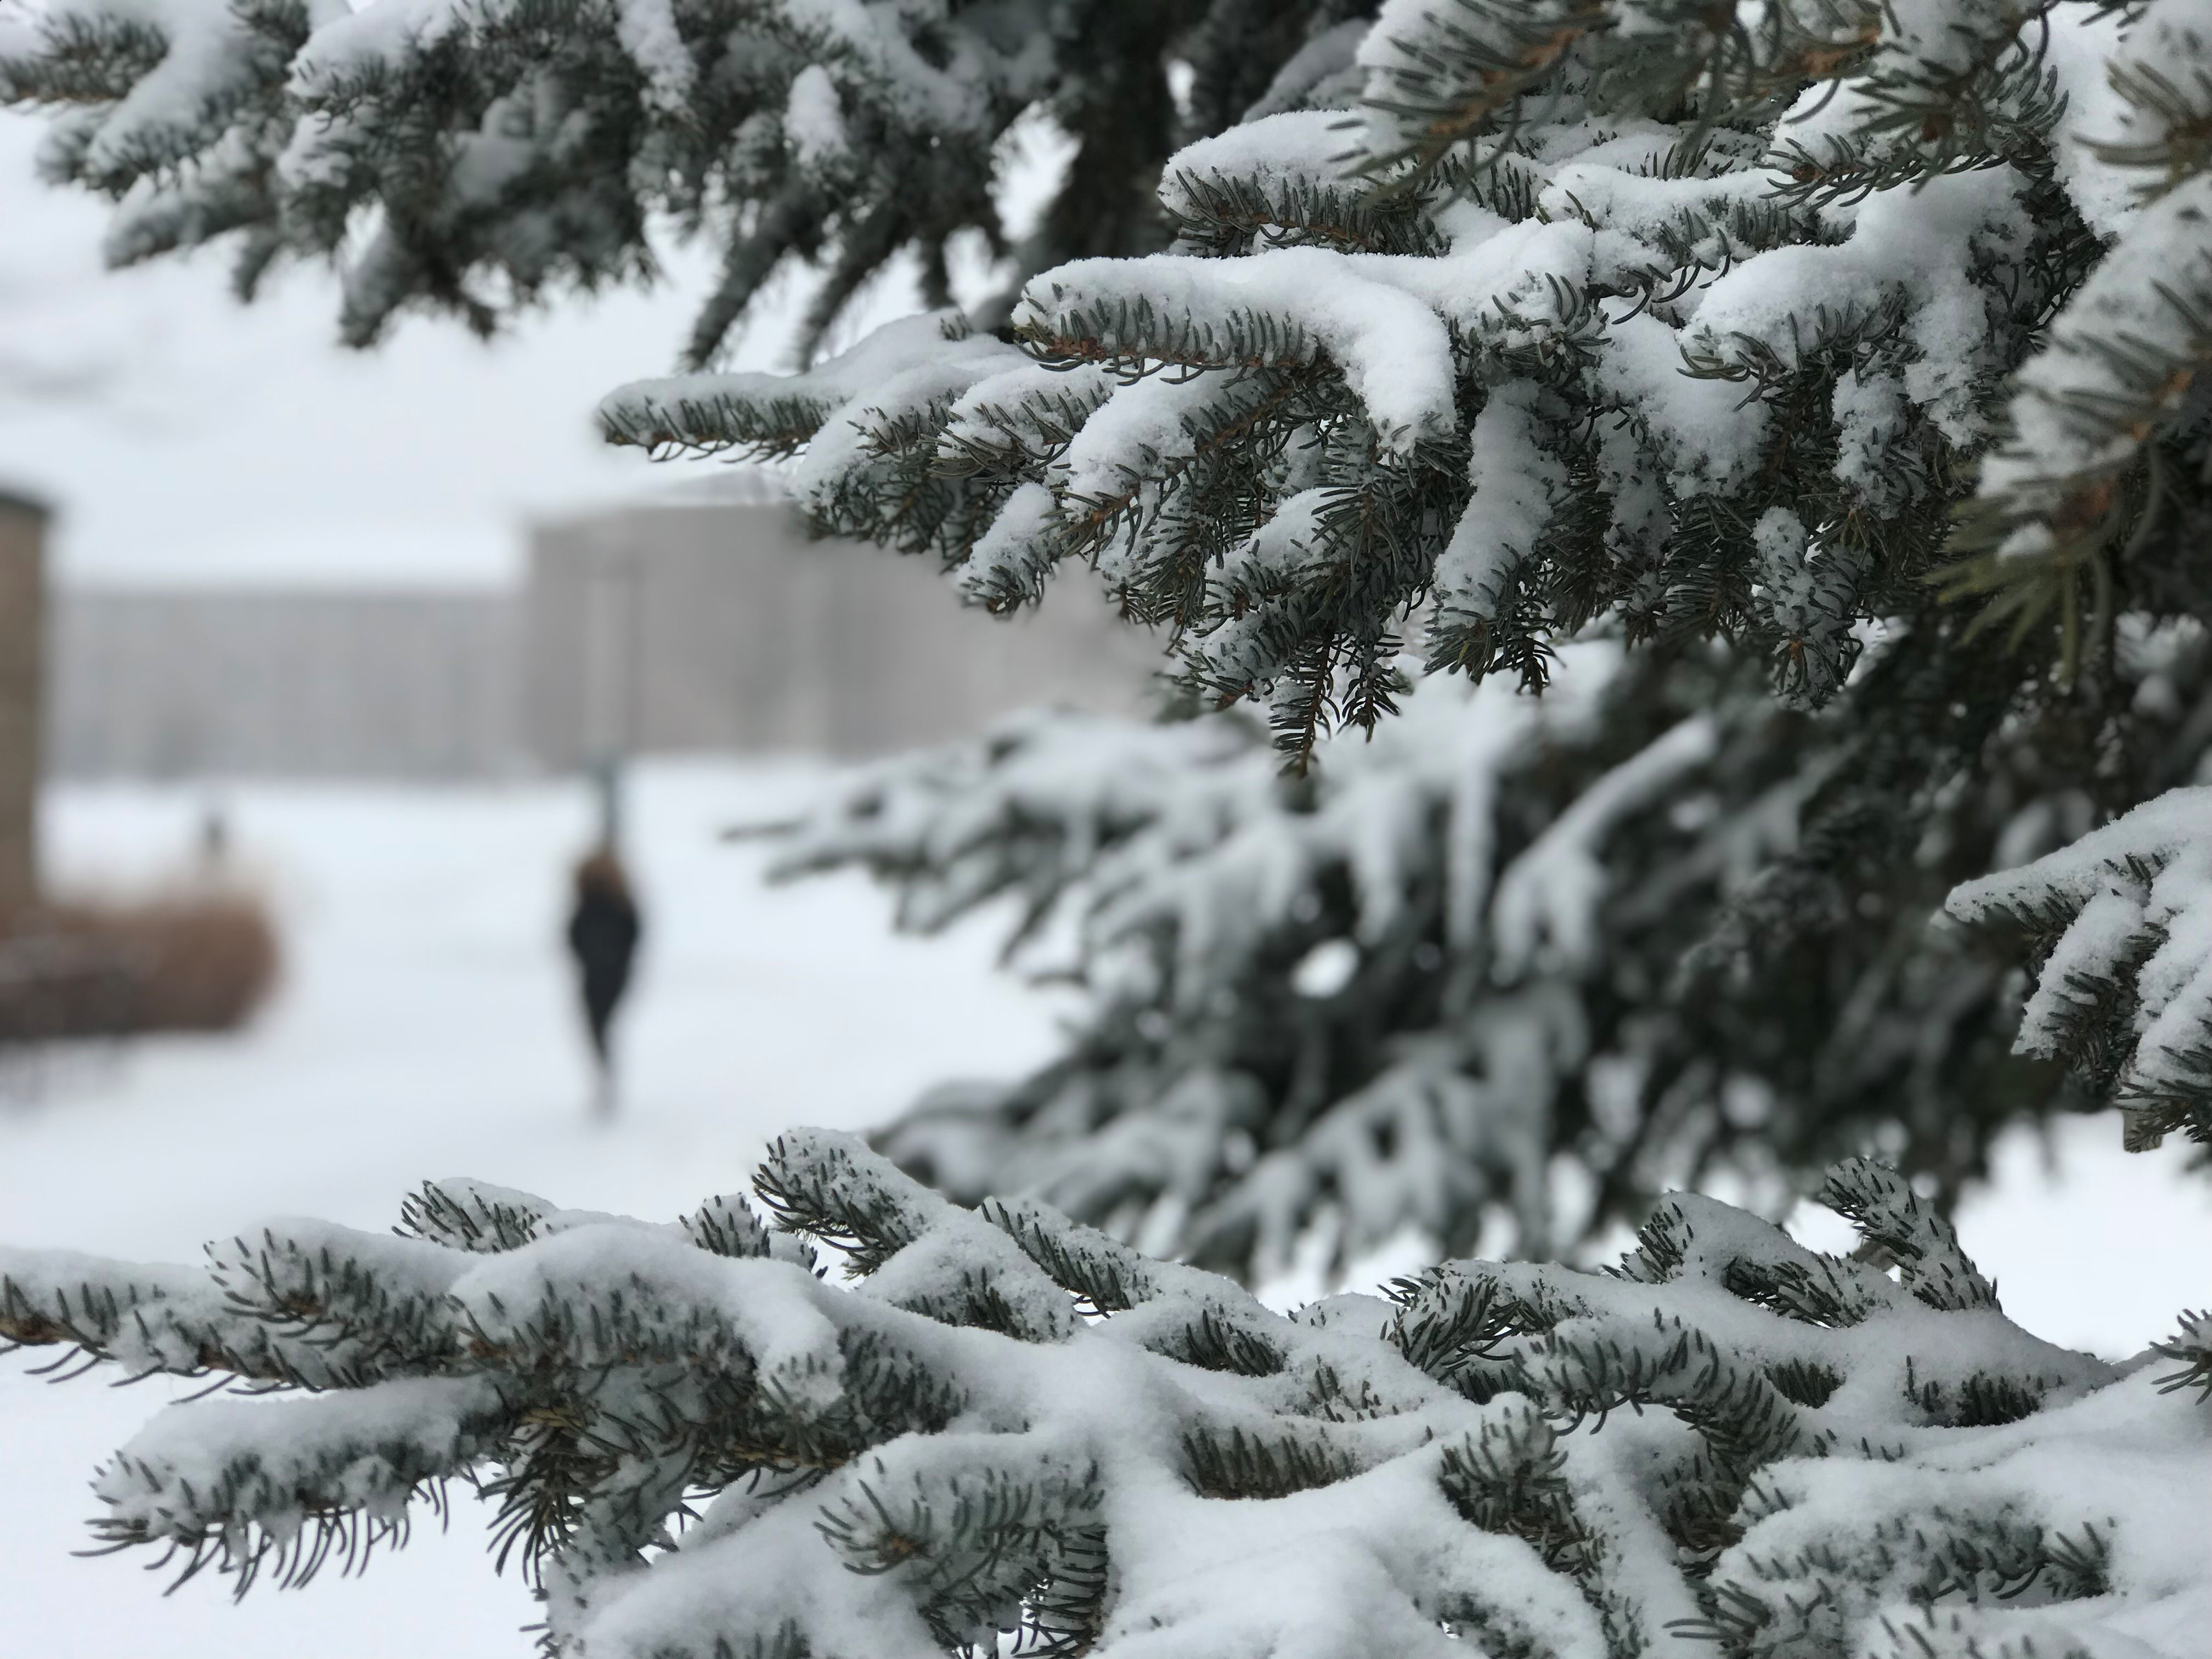 Snow from Winter Storm Abigail covers evergreen branches on the University of Wisconsin-Green Bay campus Dec. 13, 2017. (WLUk/Gabrielle Mays)